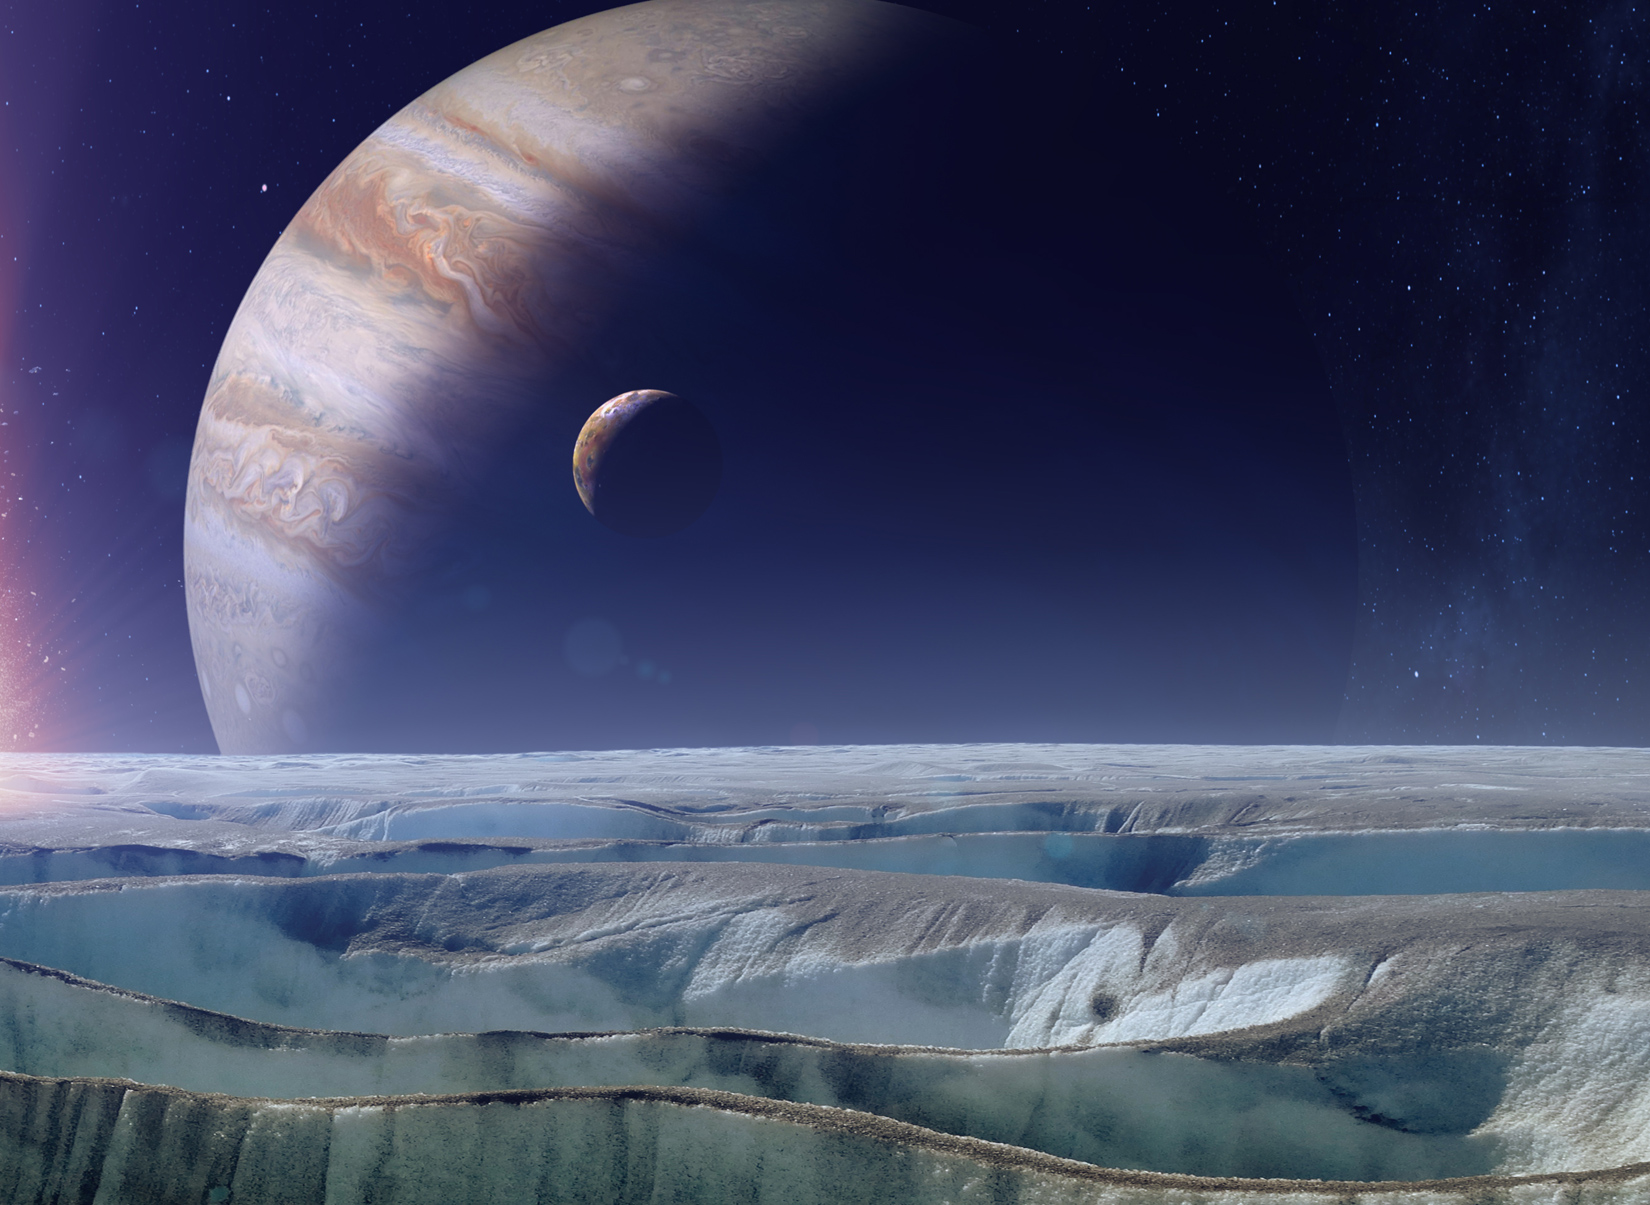 Some scientists seek to revive Pluto's status as a planet